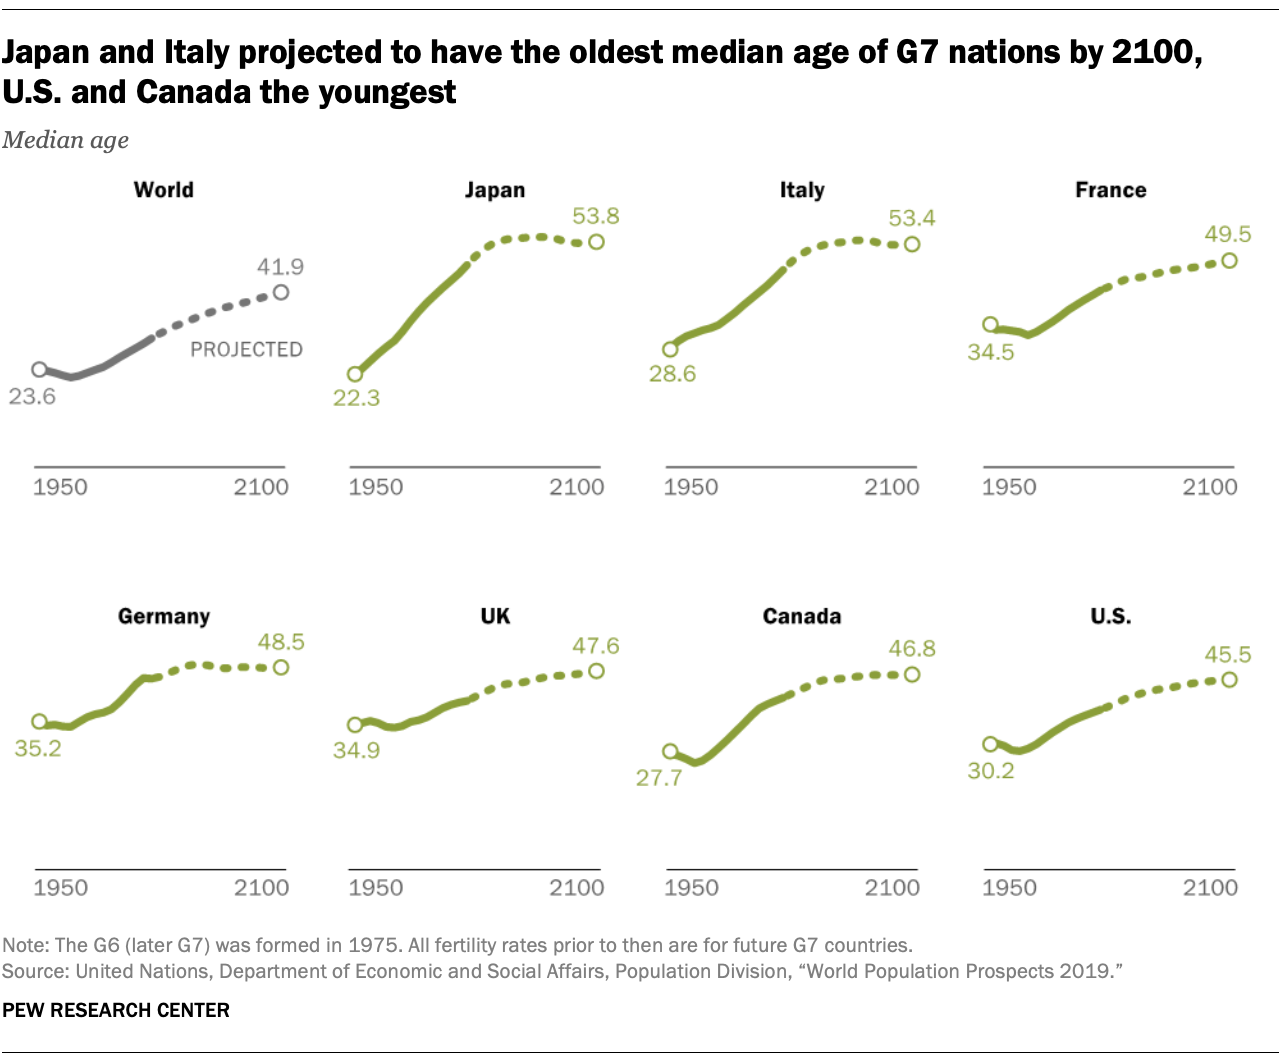 Japan and Italy projected to have the oldest median age of G7 nations by 2100, U.S. and Canada the youngest